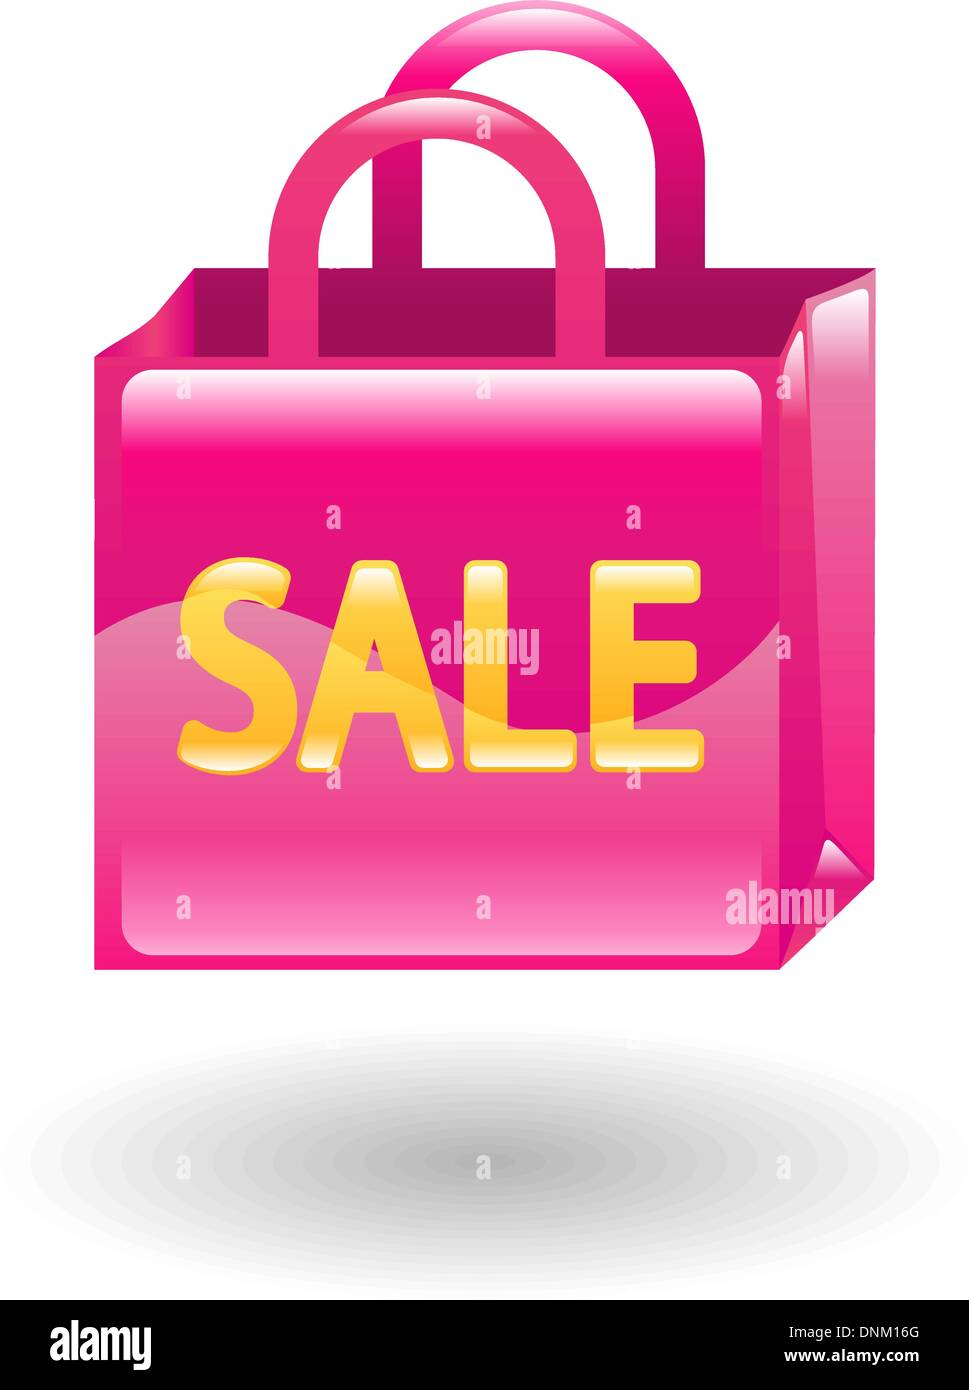 Illustration of a pink sale shopping bag - Stock Vector